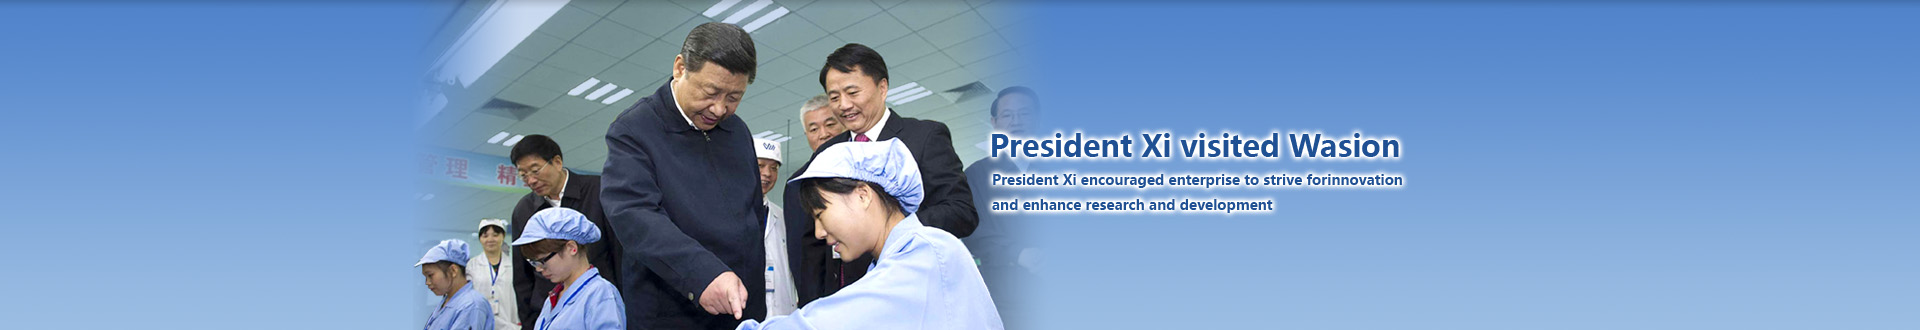 President Xi visited Wasion